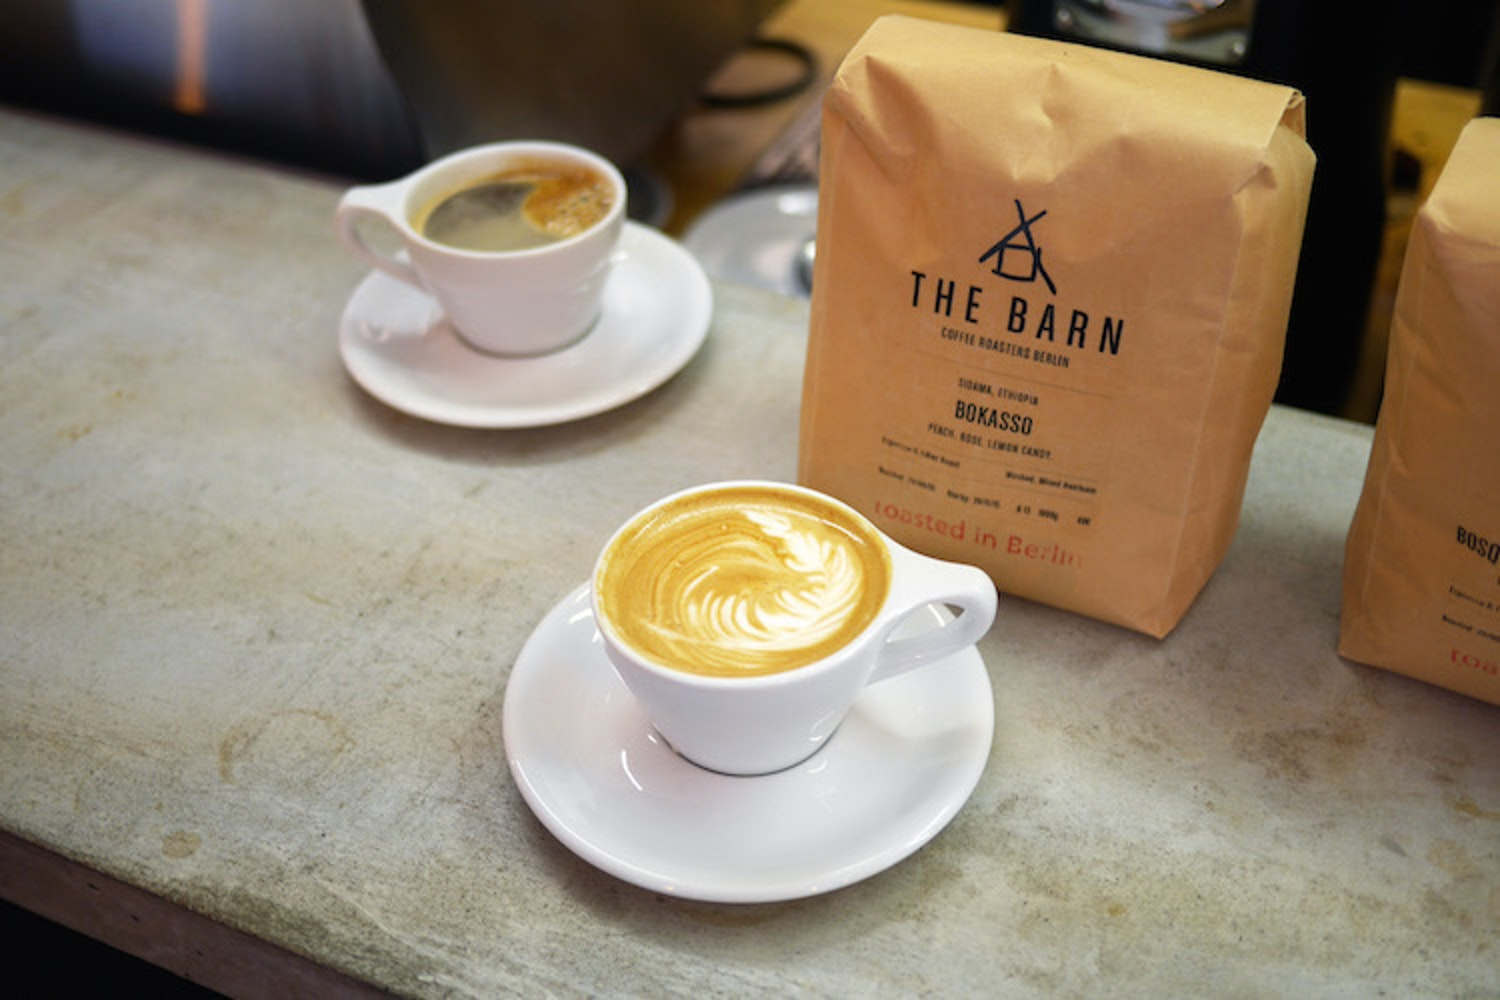 Want a quick break? 5 awesome coffee shops close to The Den